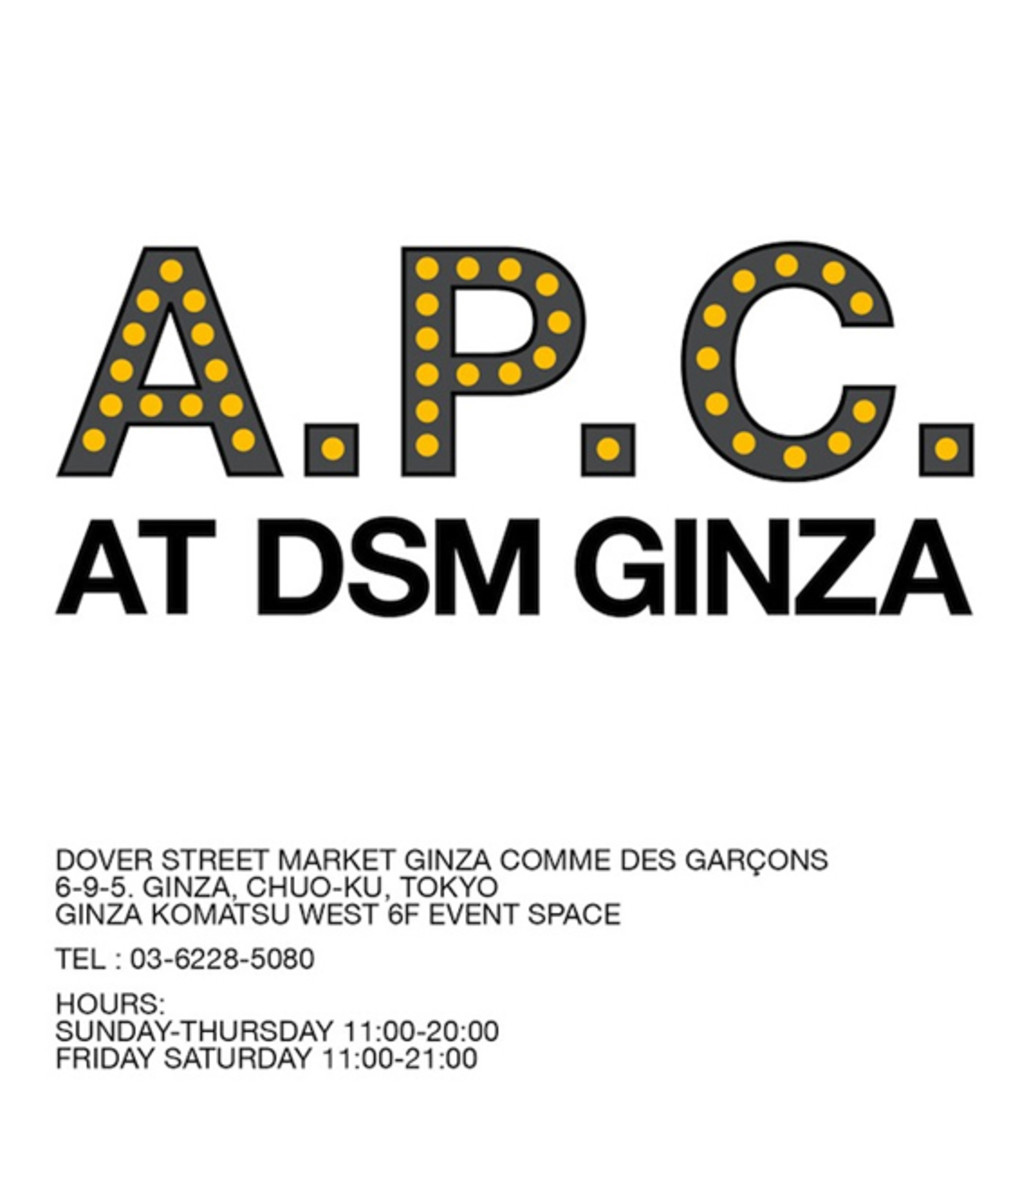 apc-special-space-at-dover-street-market-ginza-01